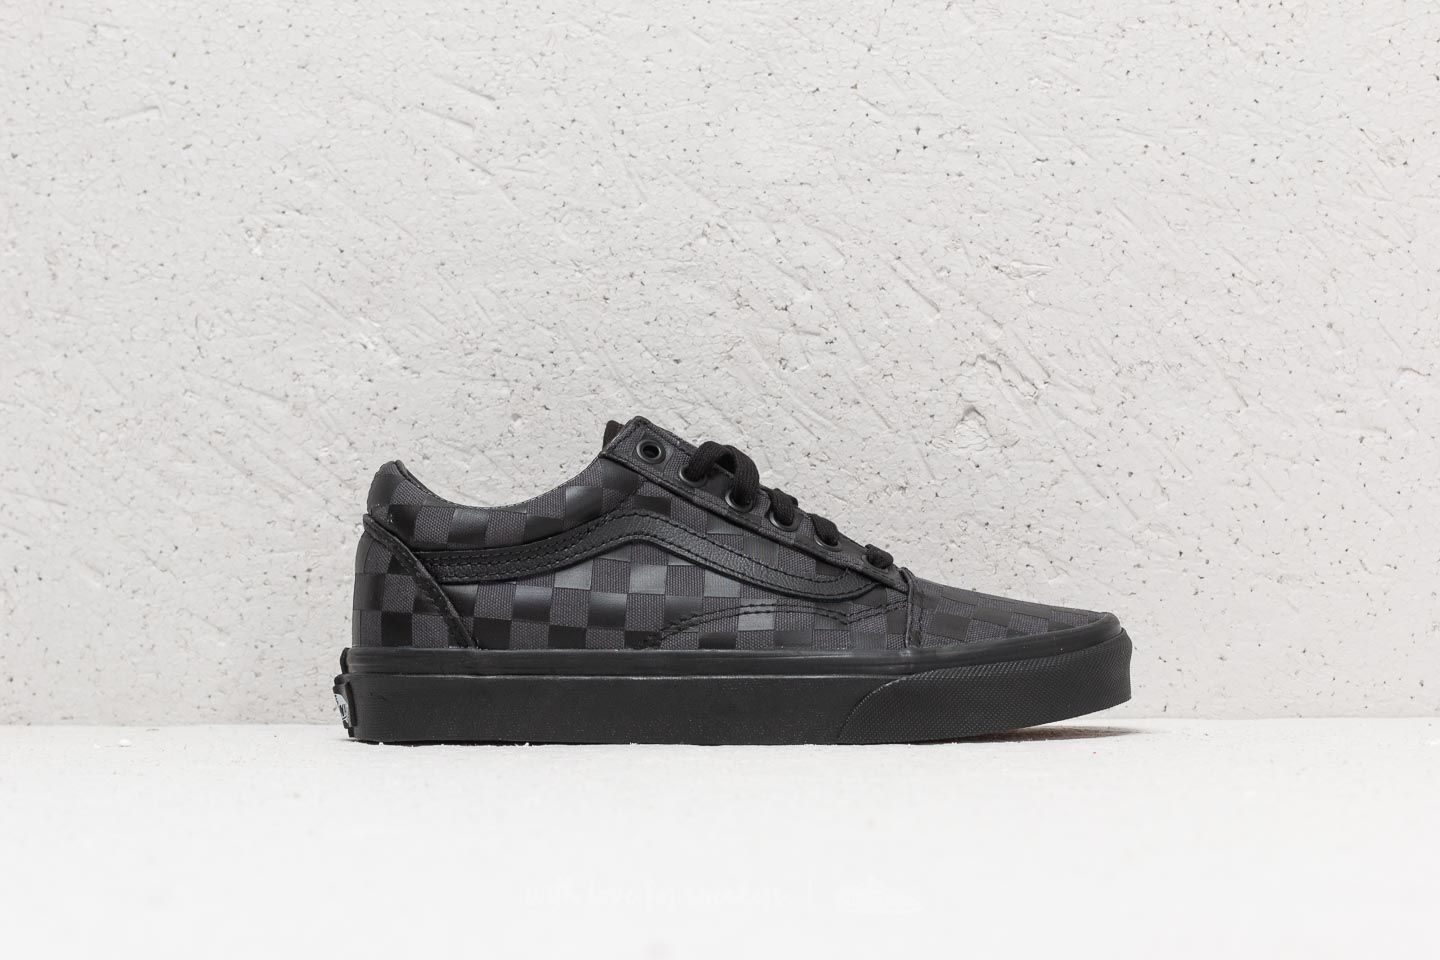 6f52cc5d78a368 Vans Old Skool (High Density) Black  Checkerboard at a great price 62 €